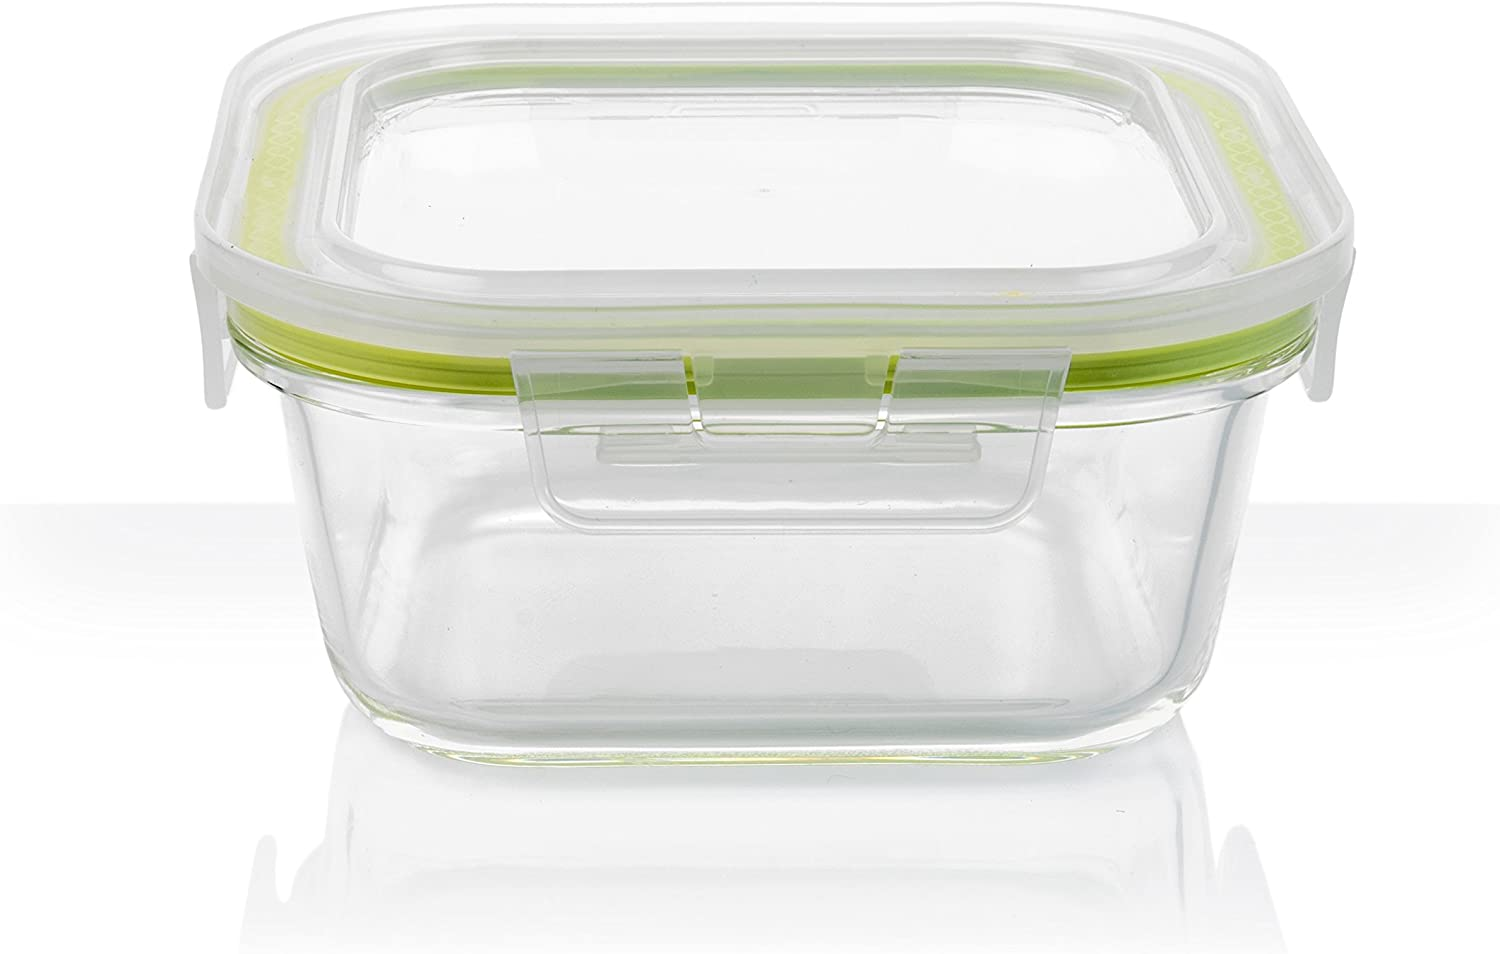 Komax A-1037 Borosilicate Glass Oven Food Storage Container, Rectangular - 800ml